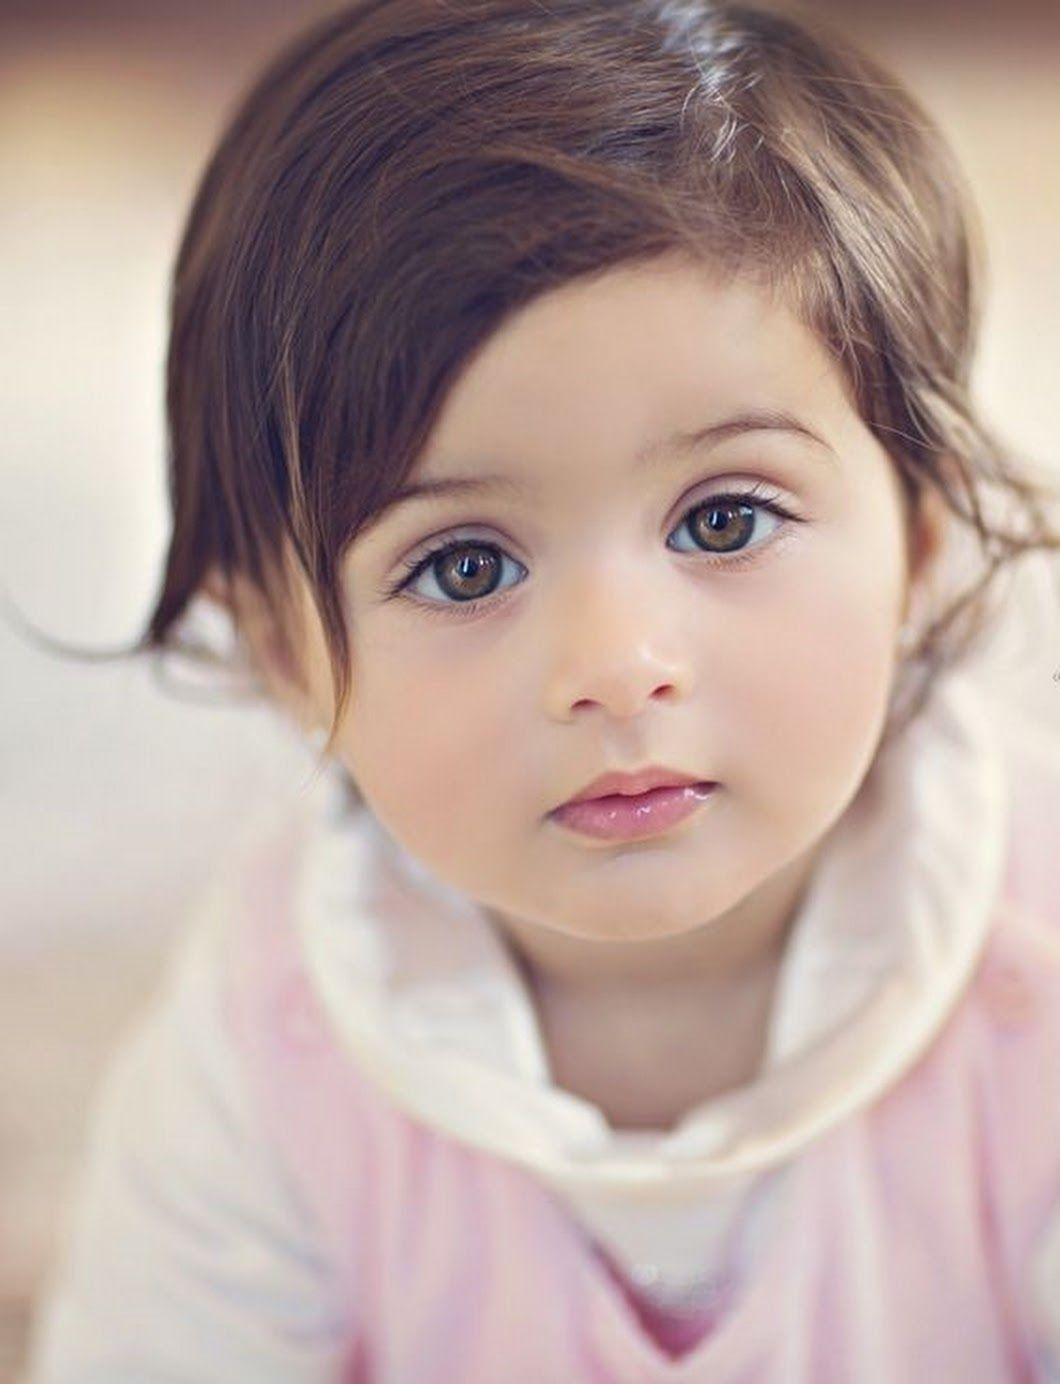 Sign In Cute Baby Girl Wallpaper Cute Baby Girl Images Cute Little Baby Girl